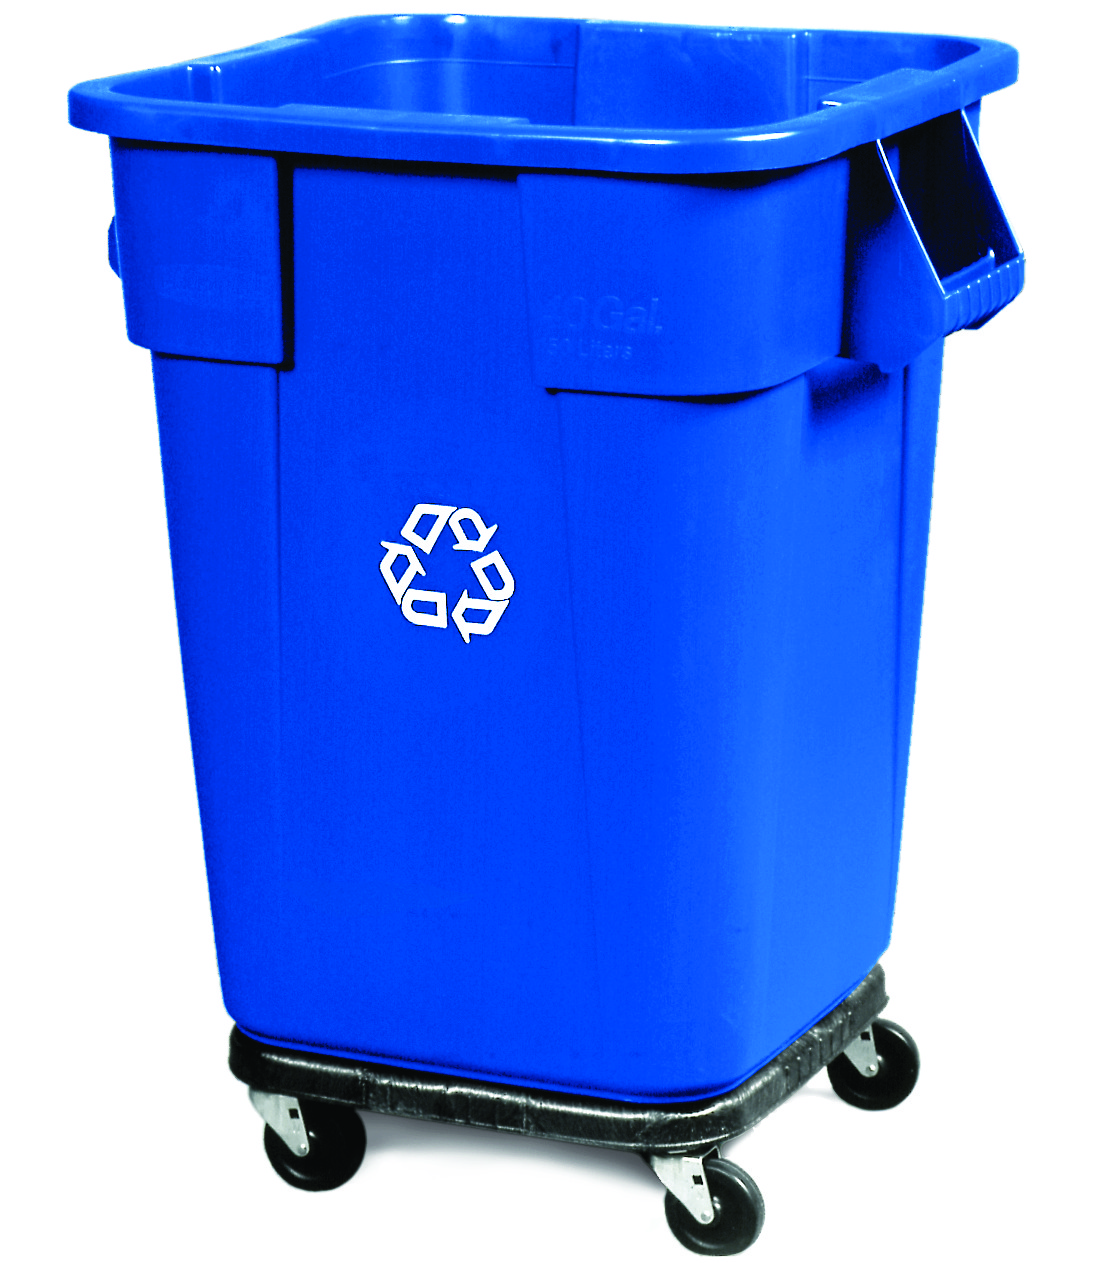 Rubbermaid 40-Gallon BRUTE Square Blue Recycling Container ...